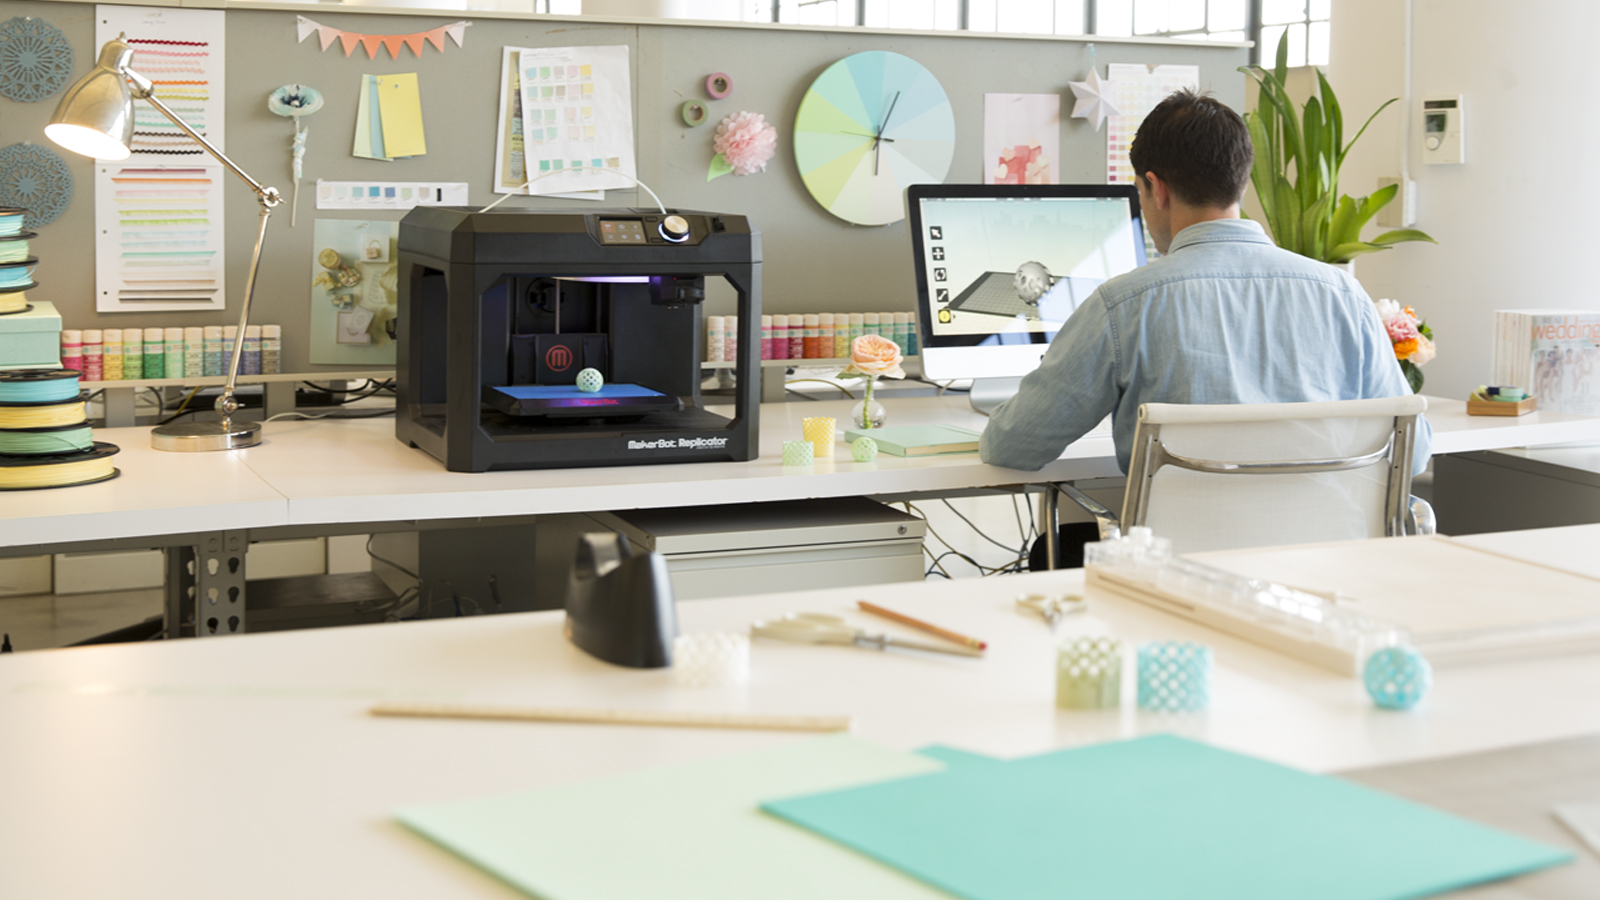 MakerBot Resource Center